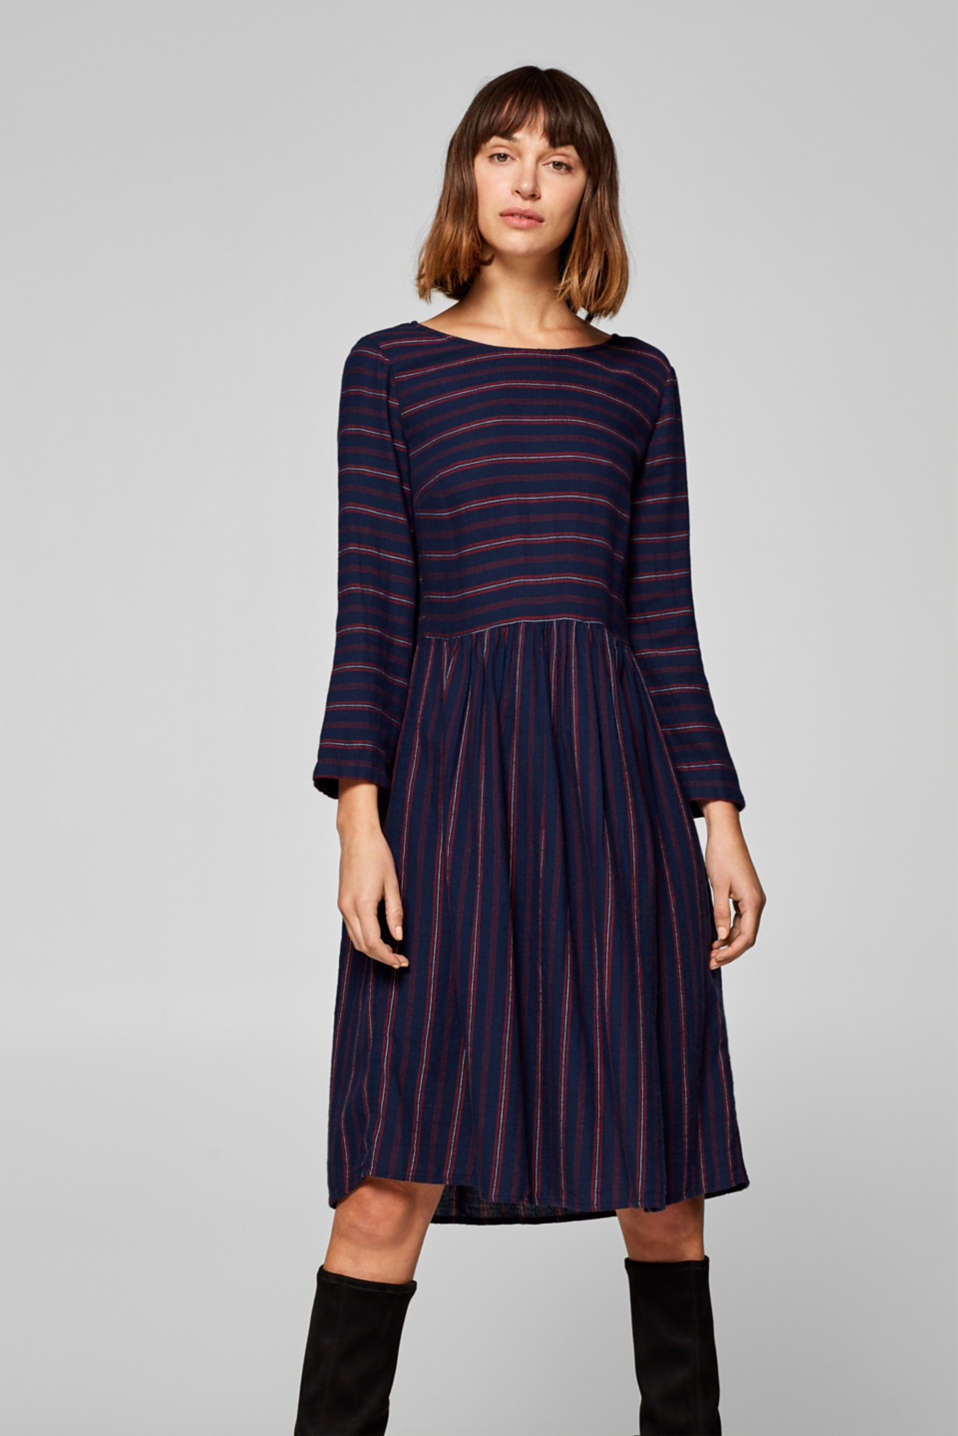 Esprit - Flannel midi dress, 100% cotton